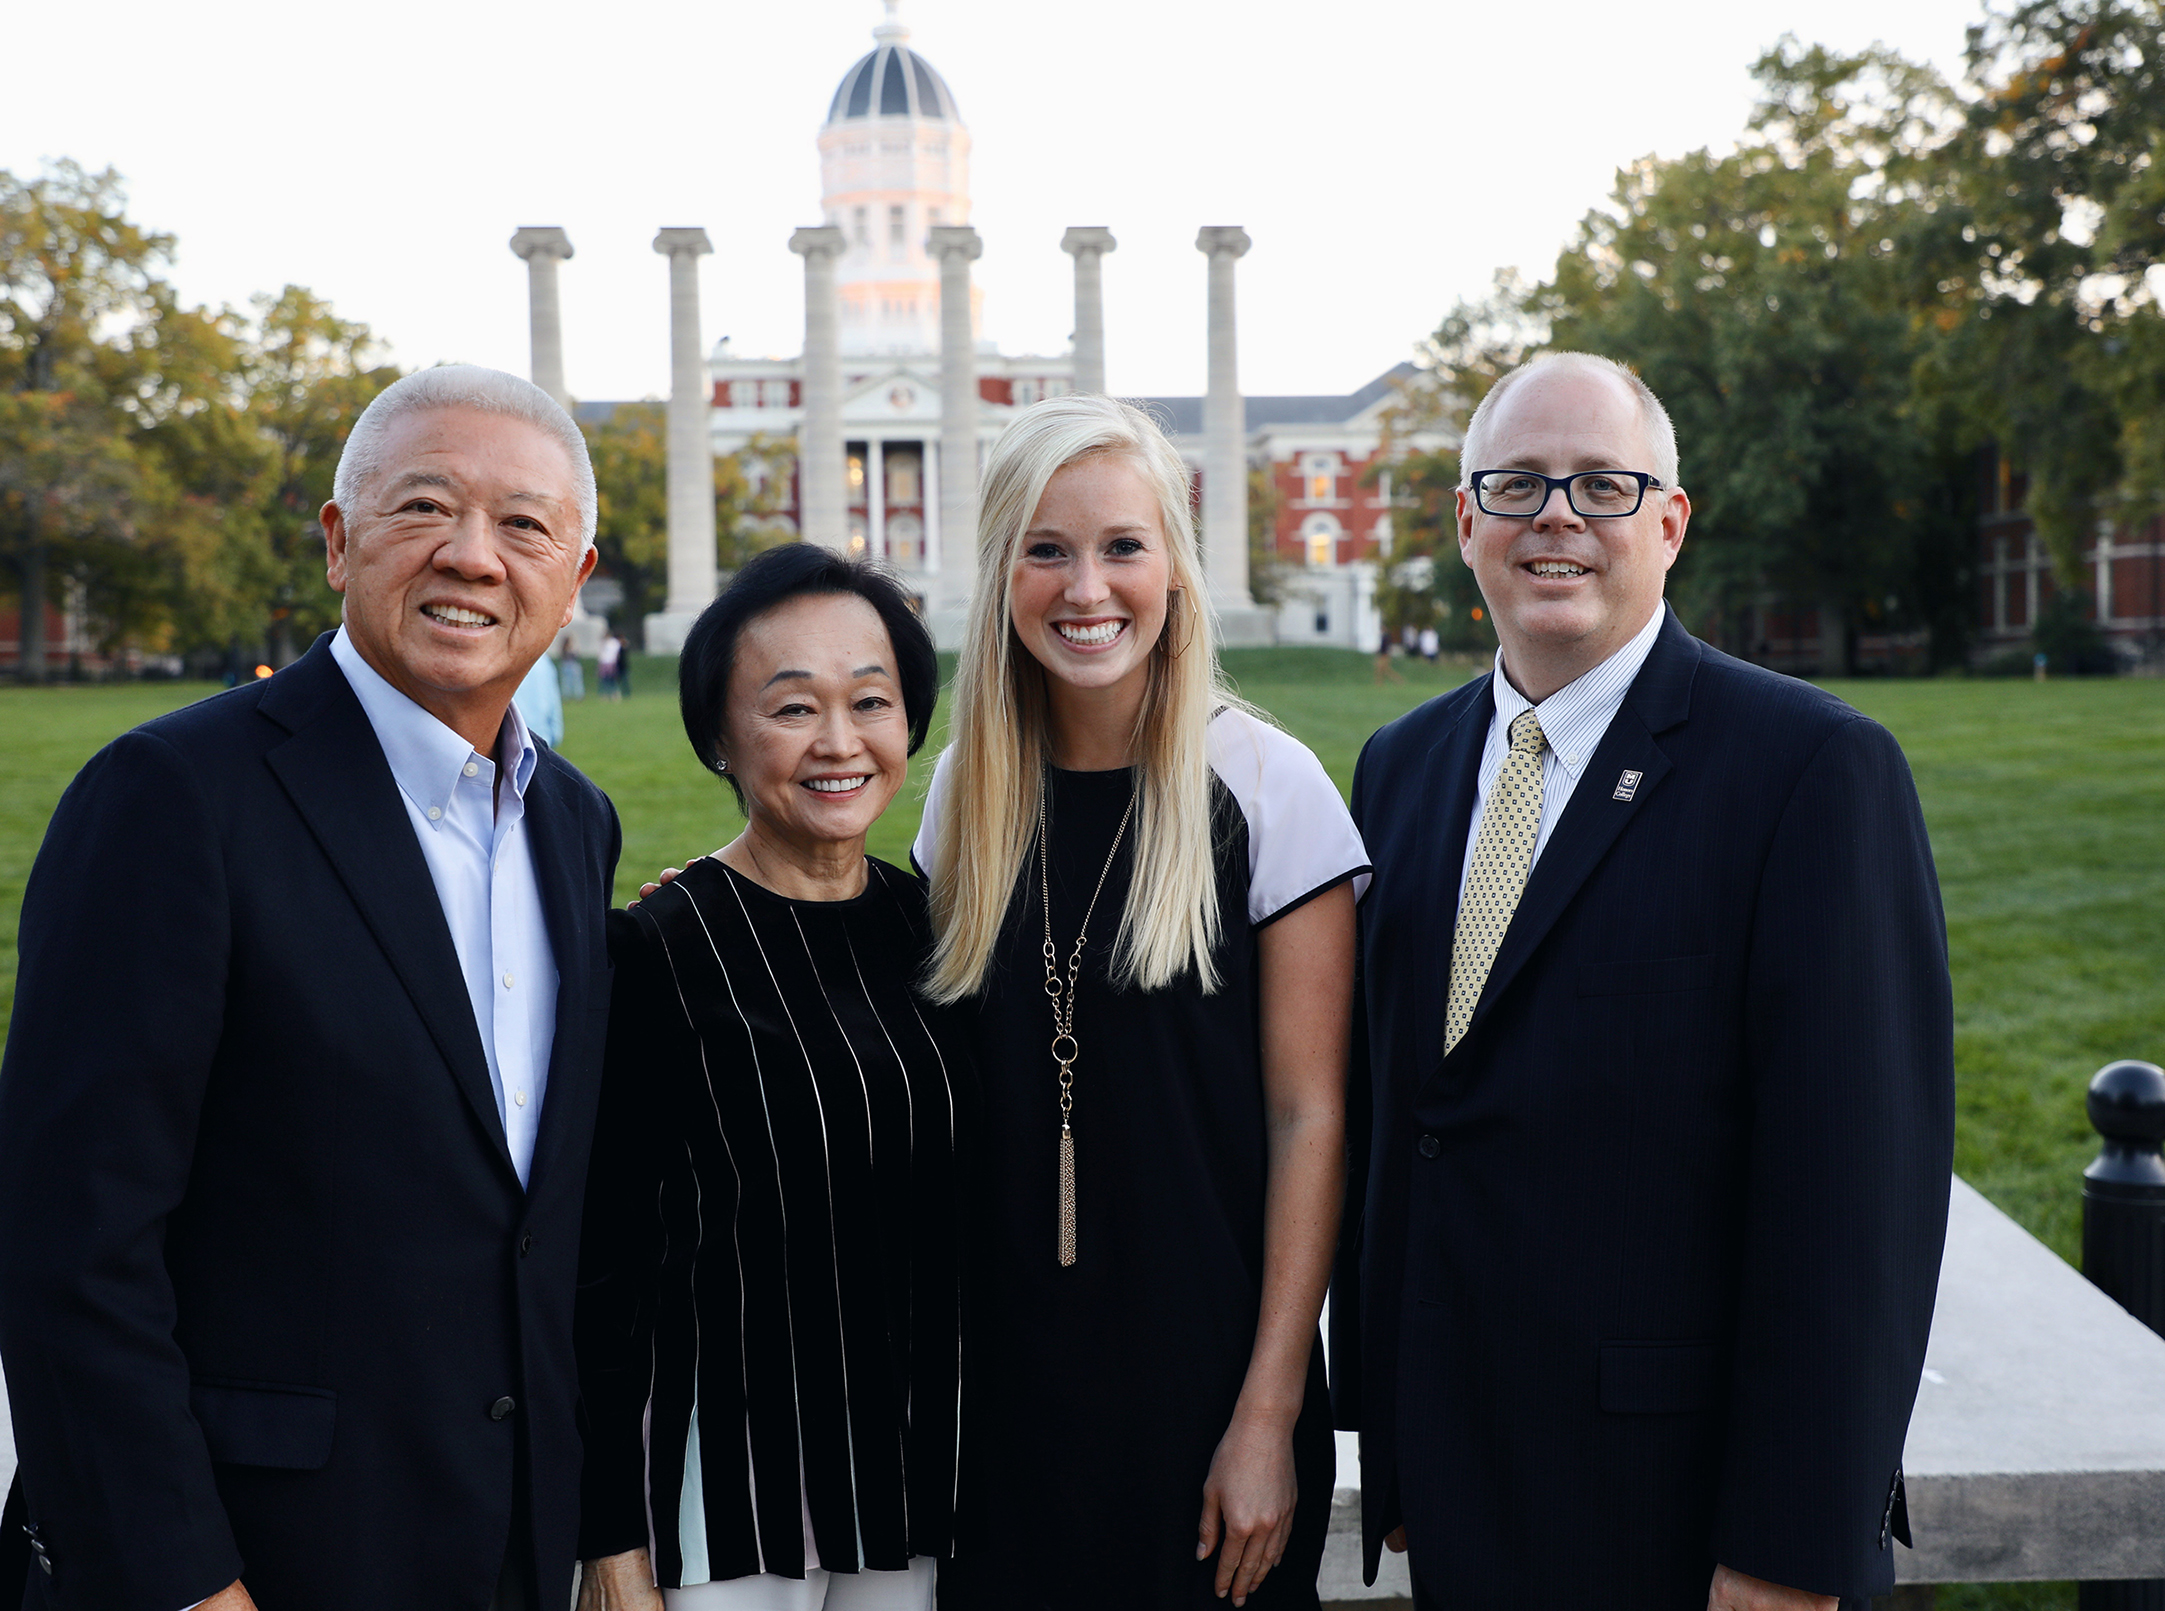 Andrew and Peggy Cherng, Baylee Francka and J.D. Bowers